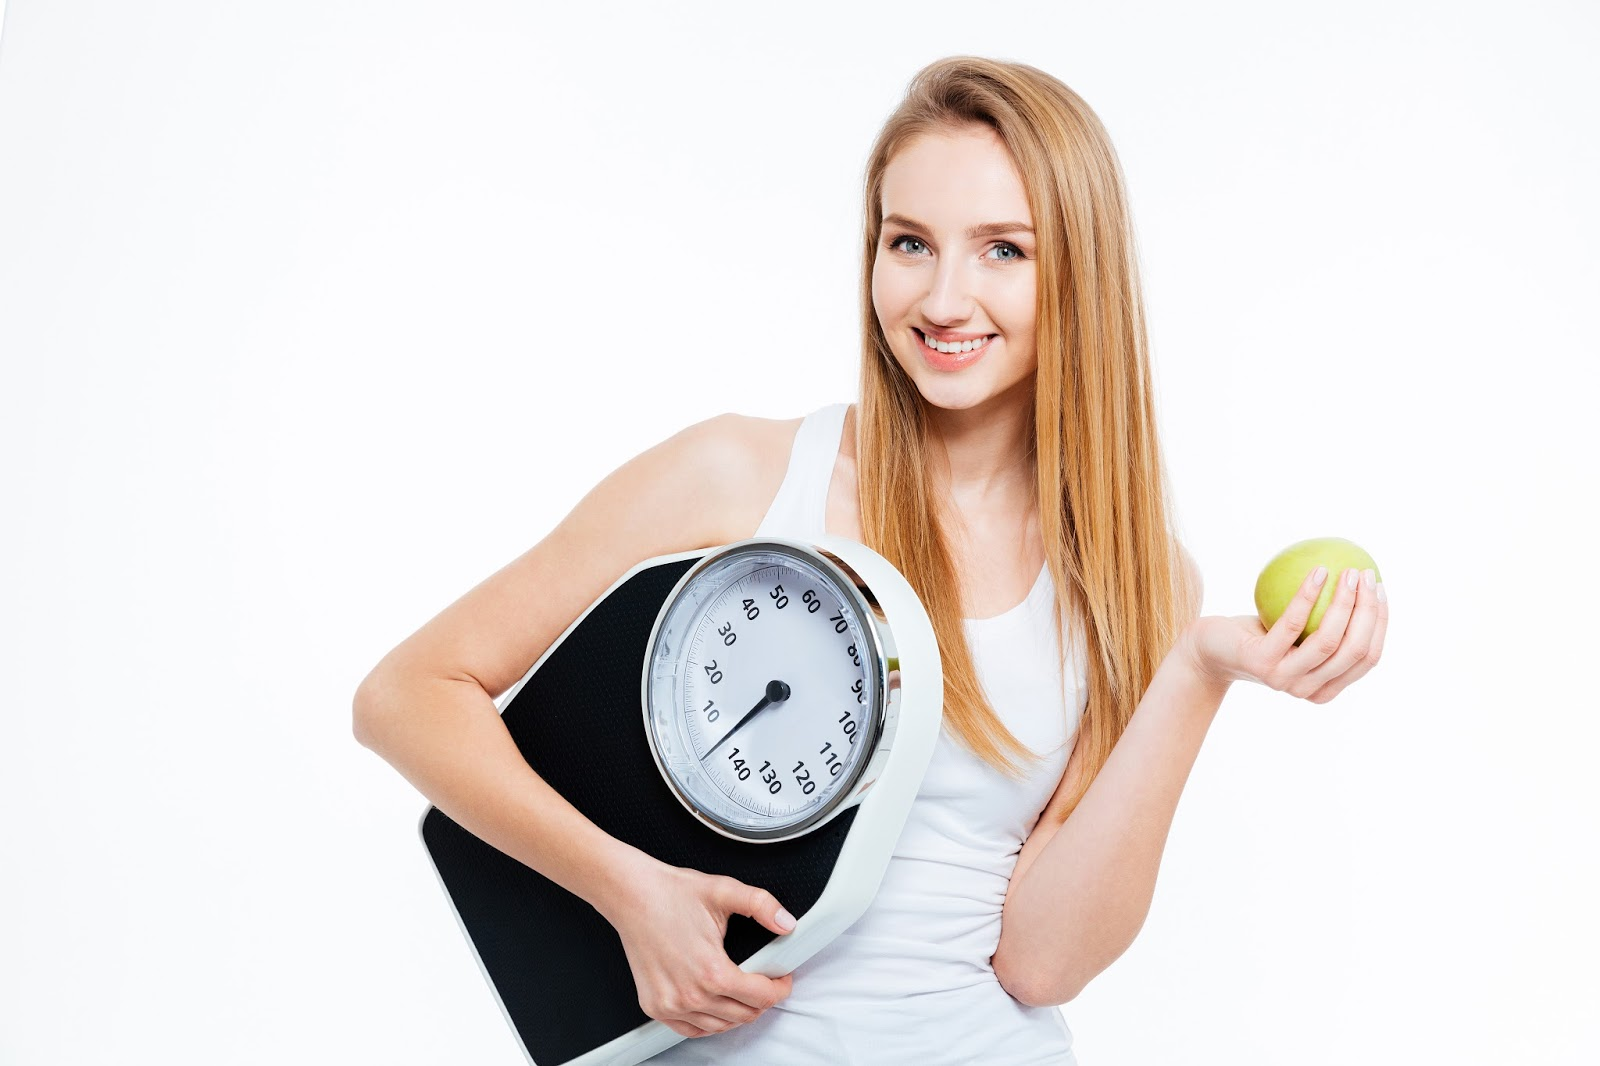 5 Diet Health And Fitness Questions